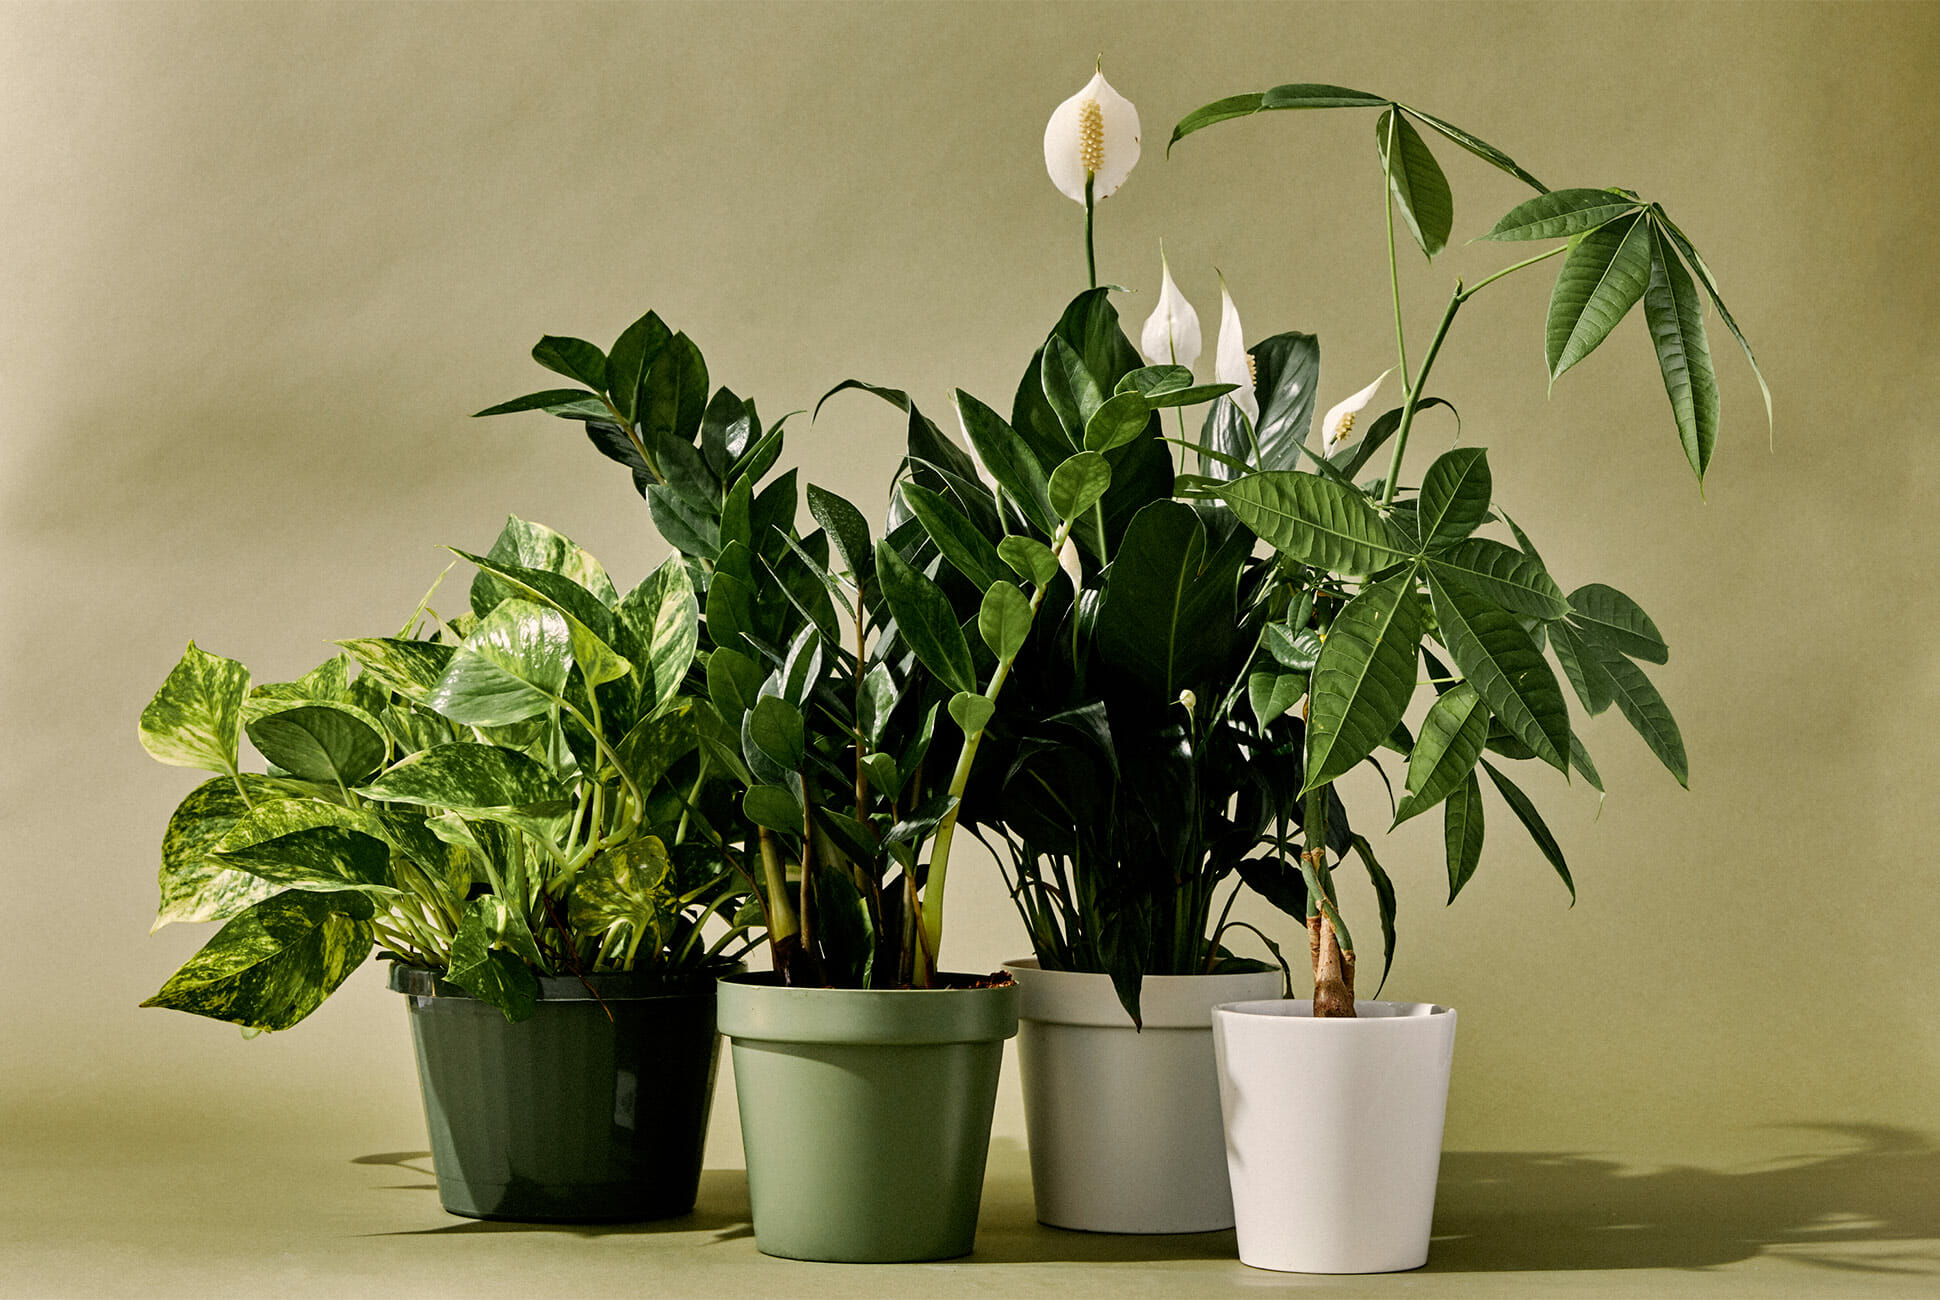 10-Best-Indoor-Plants-Gear-Patrol-lead-full